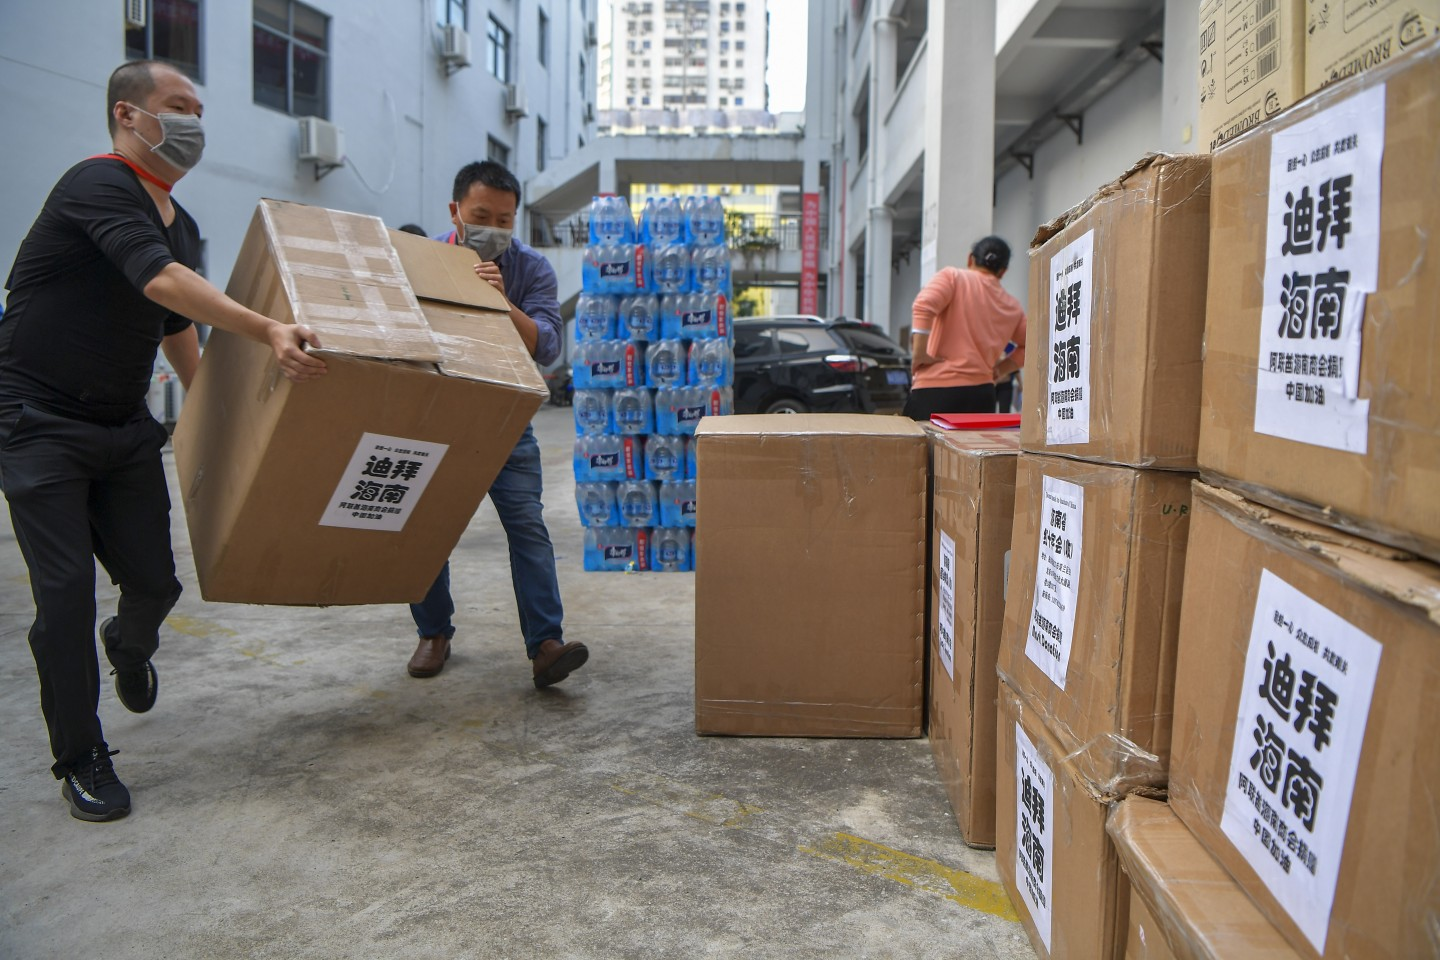 Workers of the Hainan Red Cross Society transport donated medical supplies. (CNS)